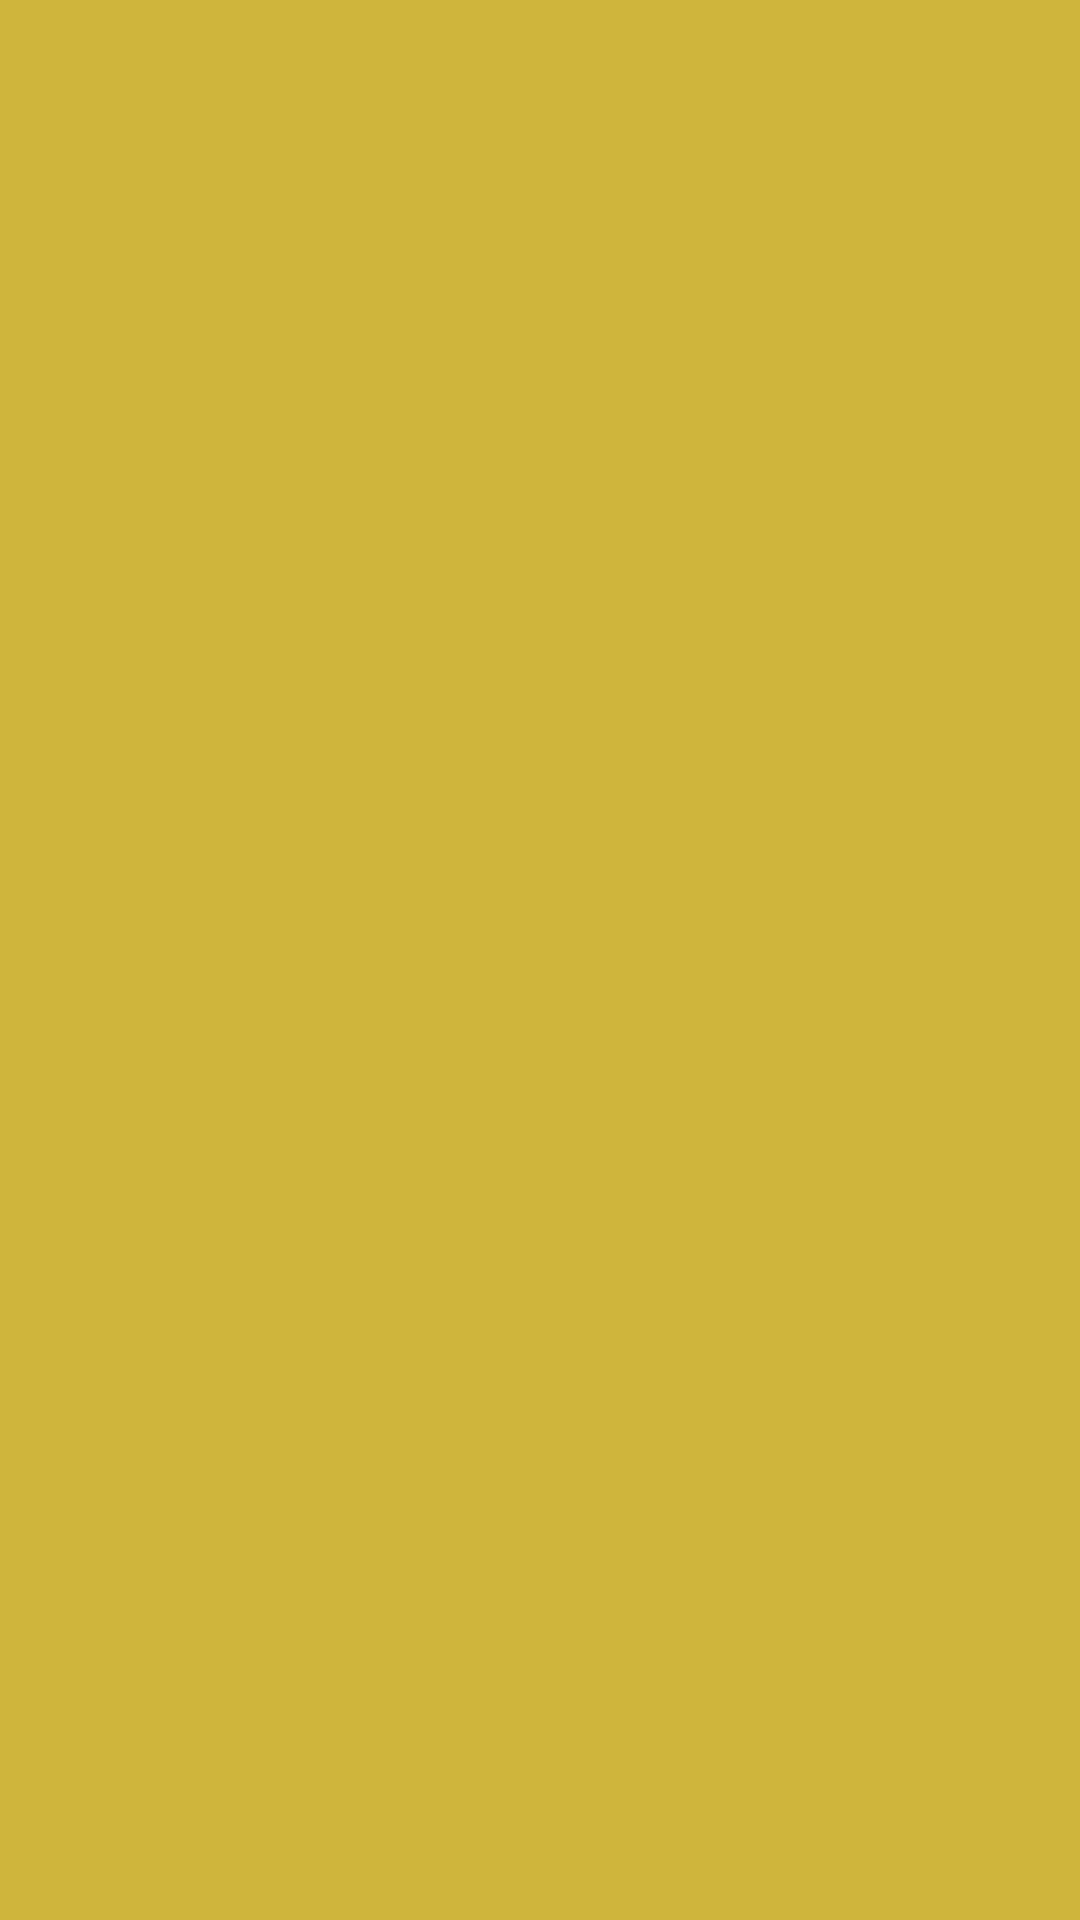 1080x1920 Old Gold Solid Color Background